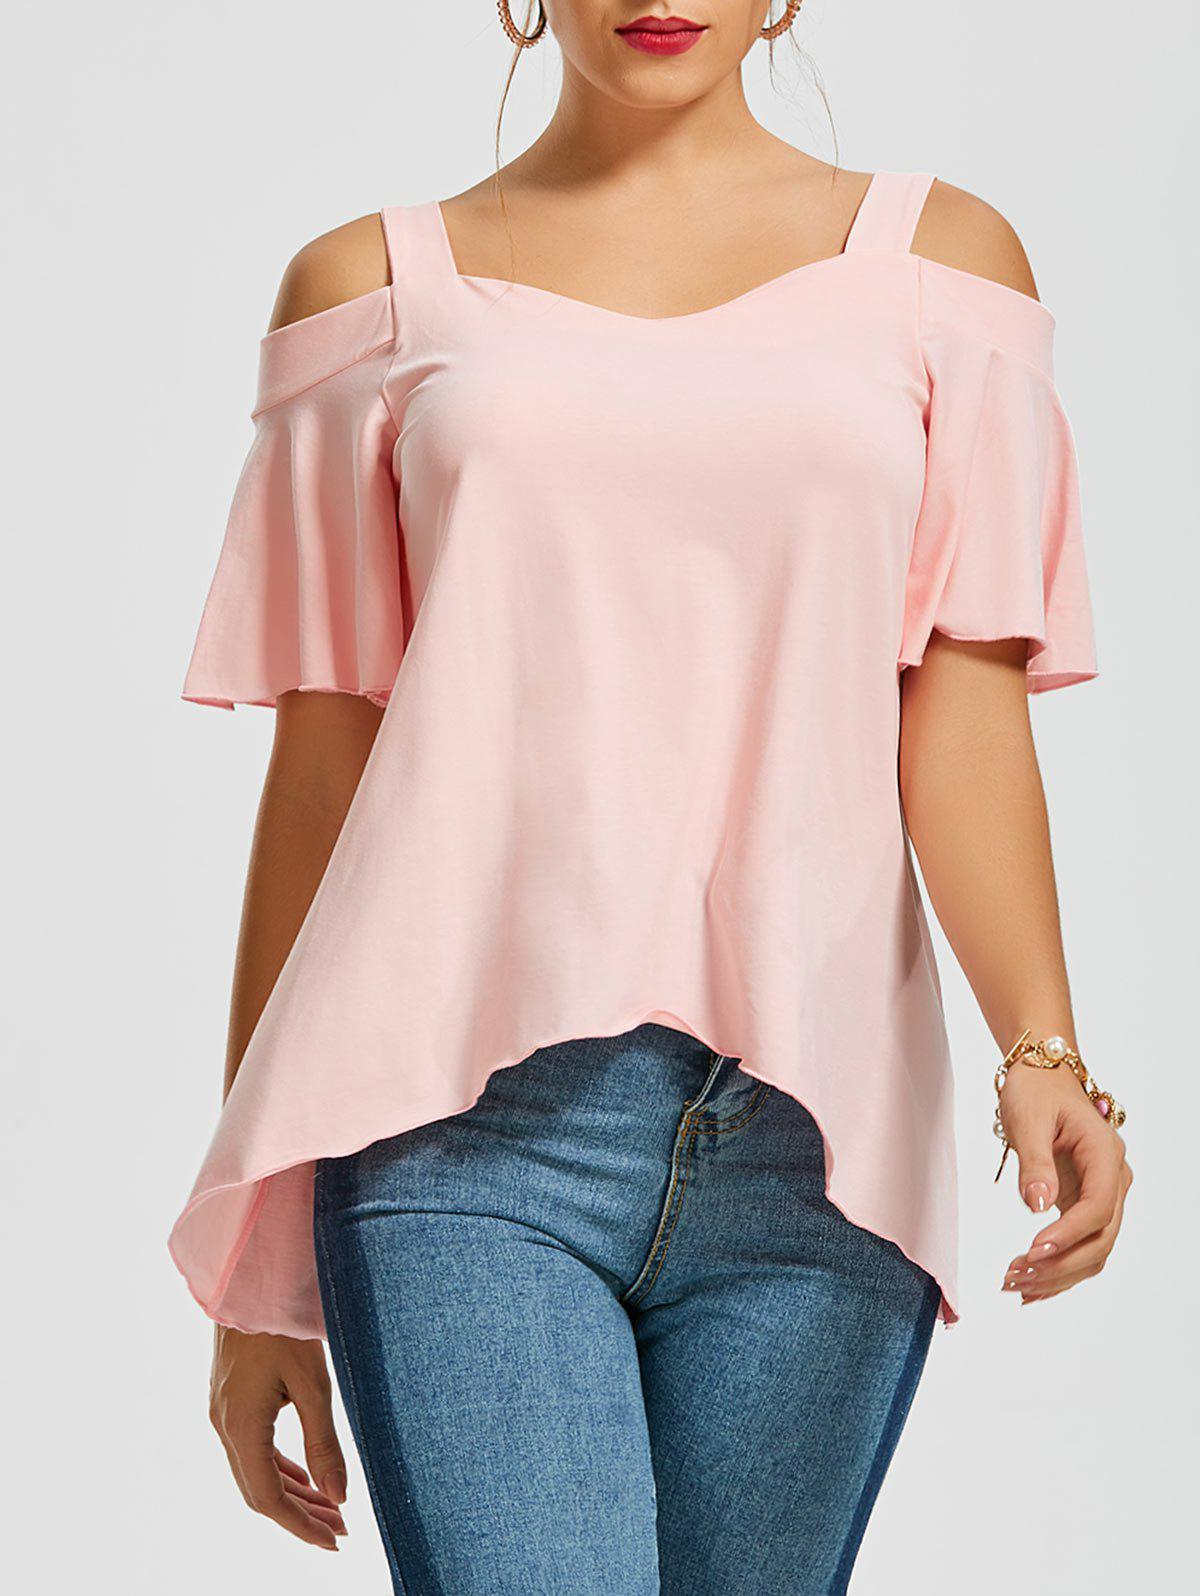 Asymmetrical Cold Shoulder TopWOMEN<br><br>Size: XL; Color: PINK; Occasion: Casual; Style: Casual; Material: Polyester,Spandex; Shirt Length: Regular; Sleeve Length: Short; Collar: Sweetheart Neck; Pattern Type: Solid; Season: Summer; Elasticity: Elastic; Weight: 0.2700kg; Package Contents: 1 x Top;